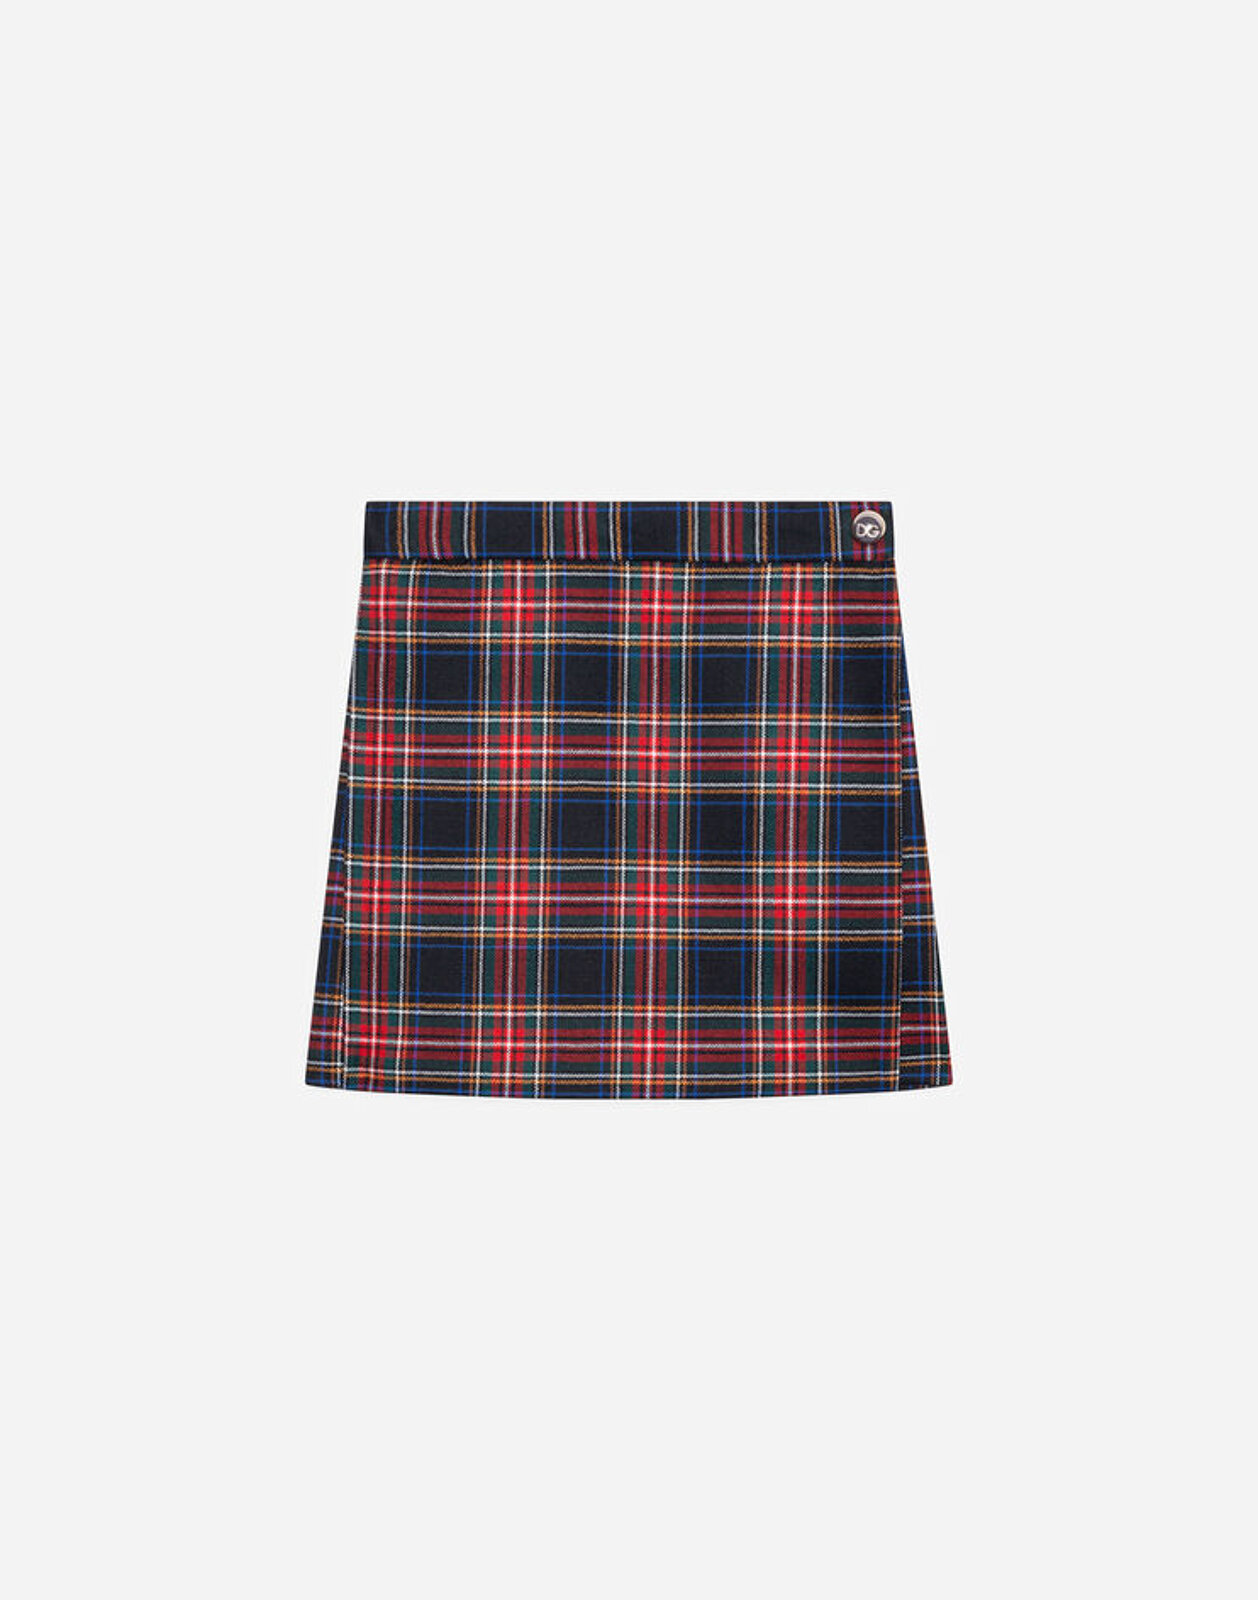 Gonna Corta In Tartan - Dolce & Gabbana Junior